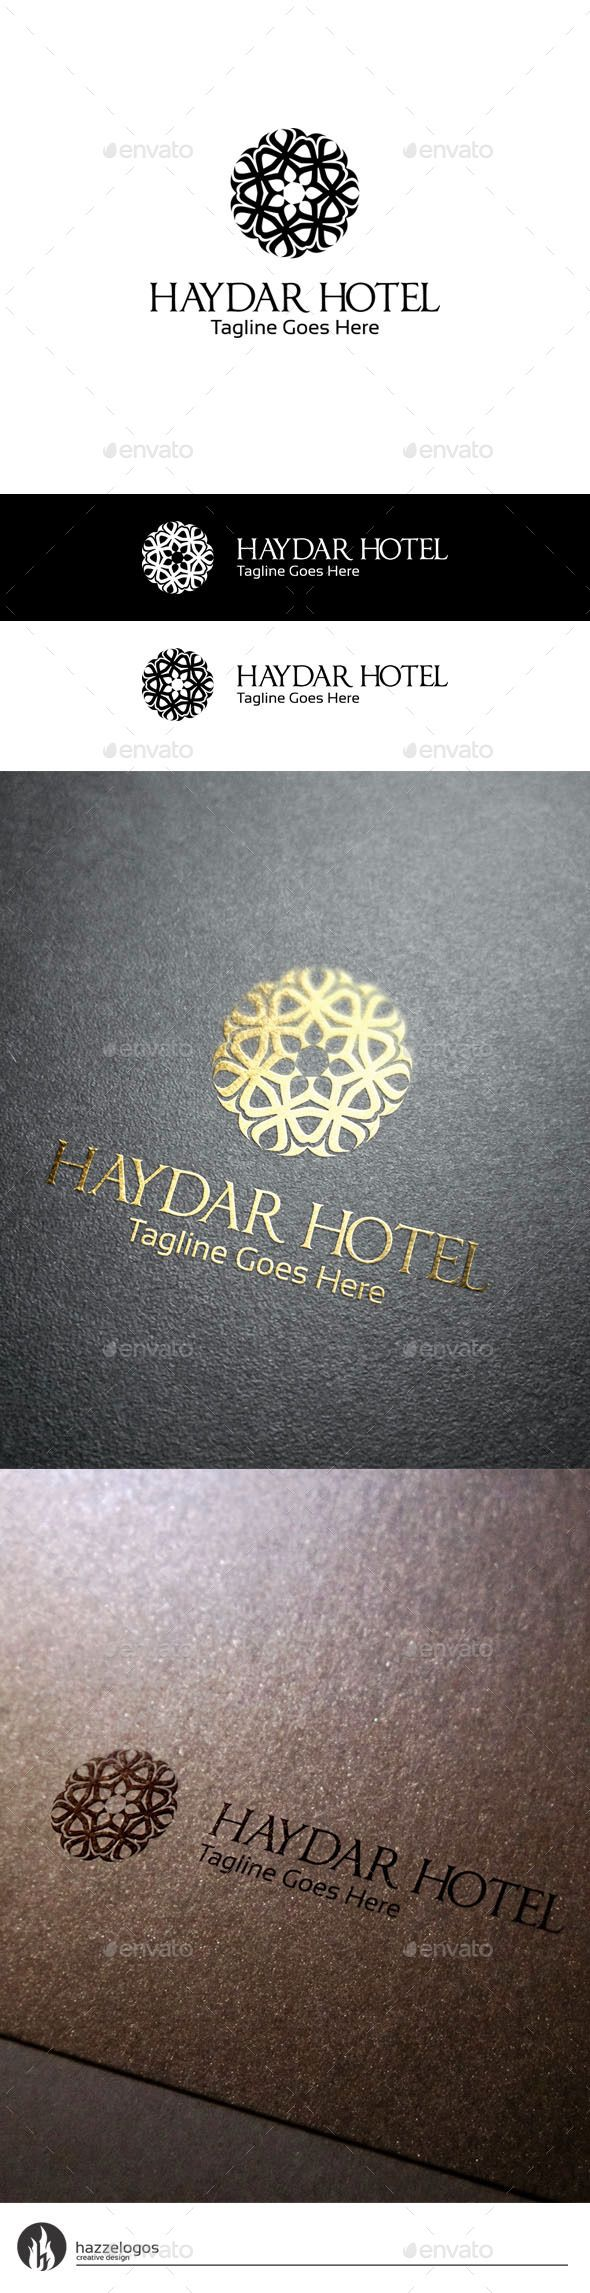 Haydar Hotel Logo Template #design Download: http://graphicriver.net/item/haydar-hotel-logo/10189433?ref=ksioks